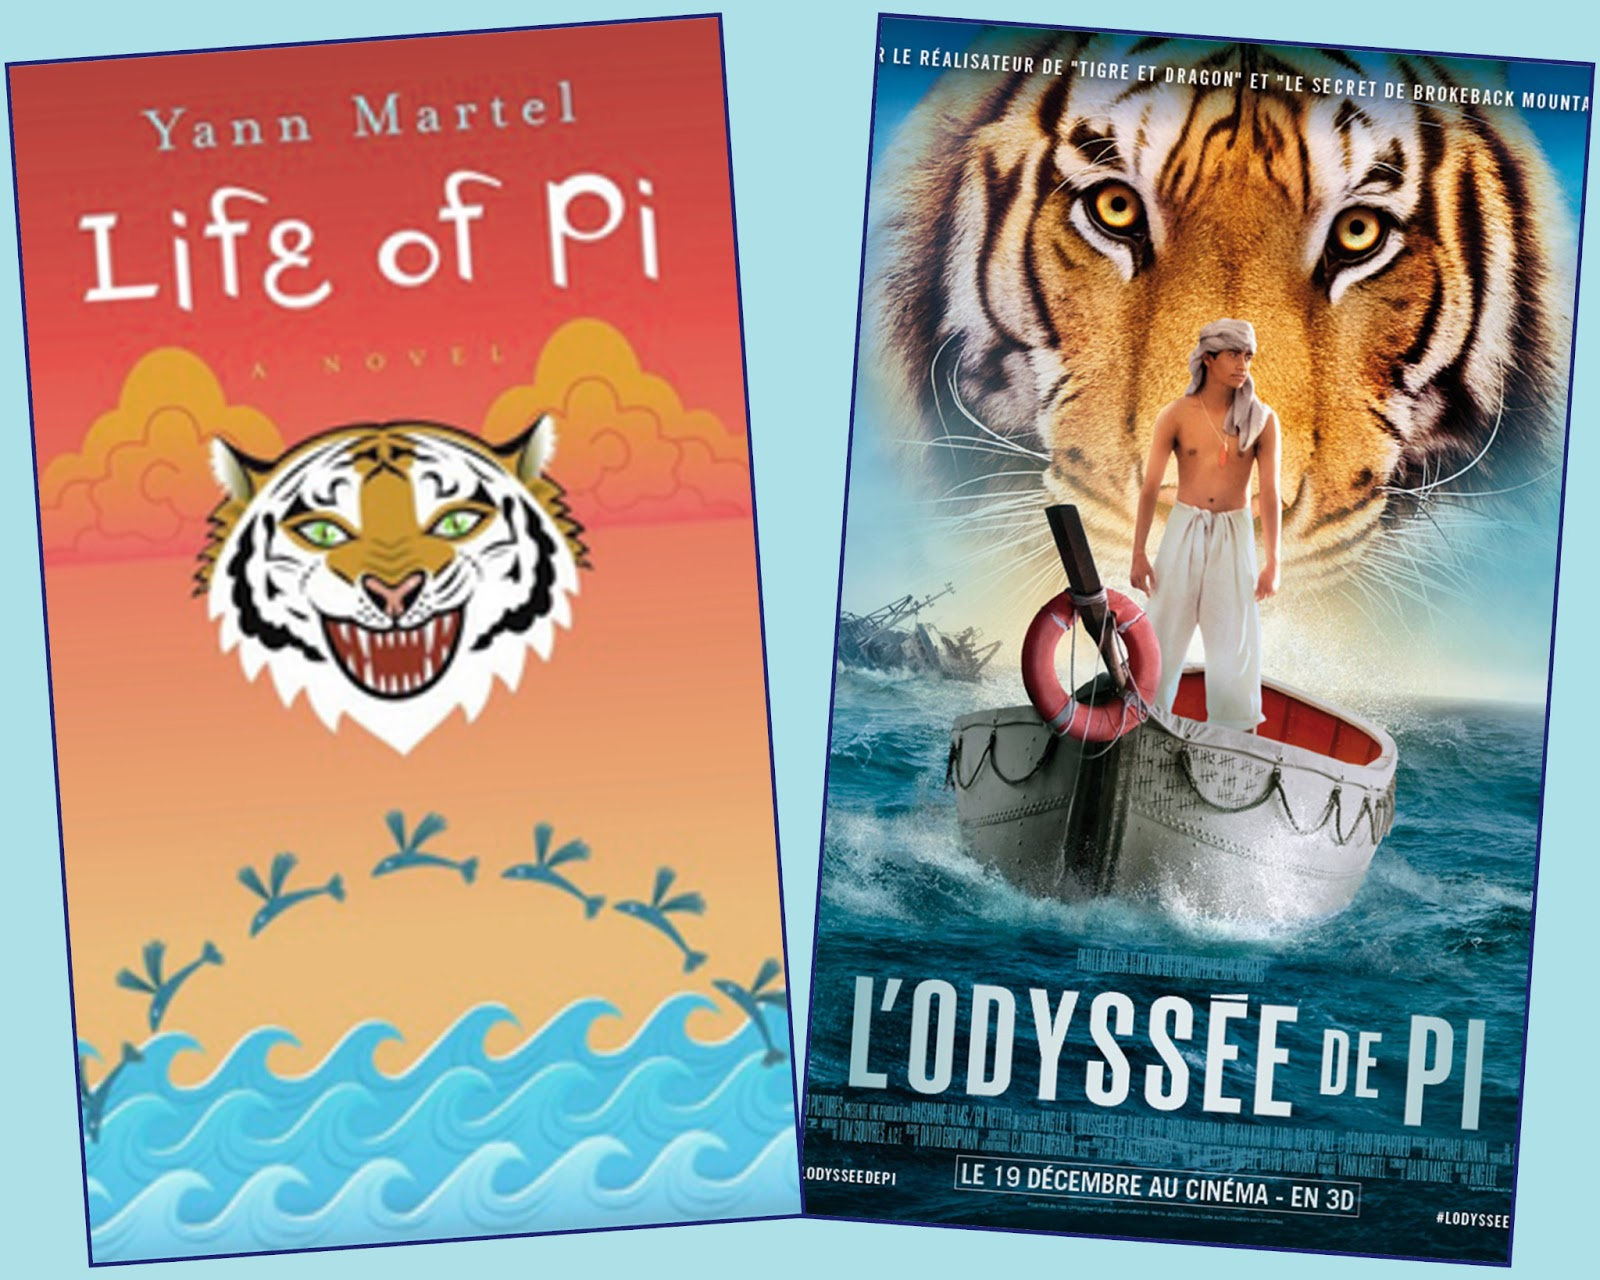 Recollections of a vagabonde recollection piscine for Life of pi swimming pool